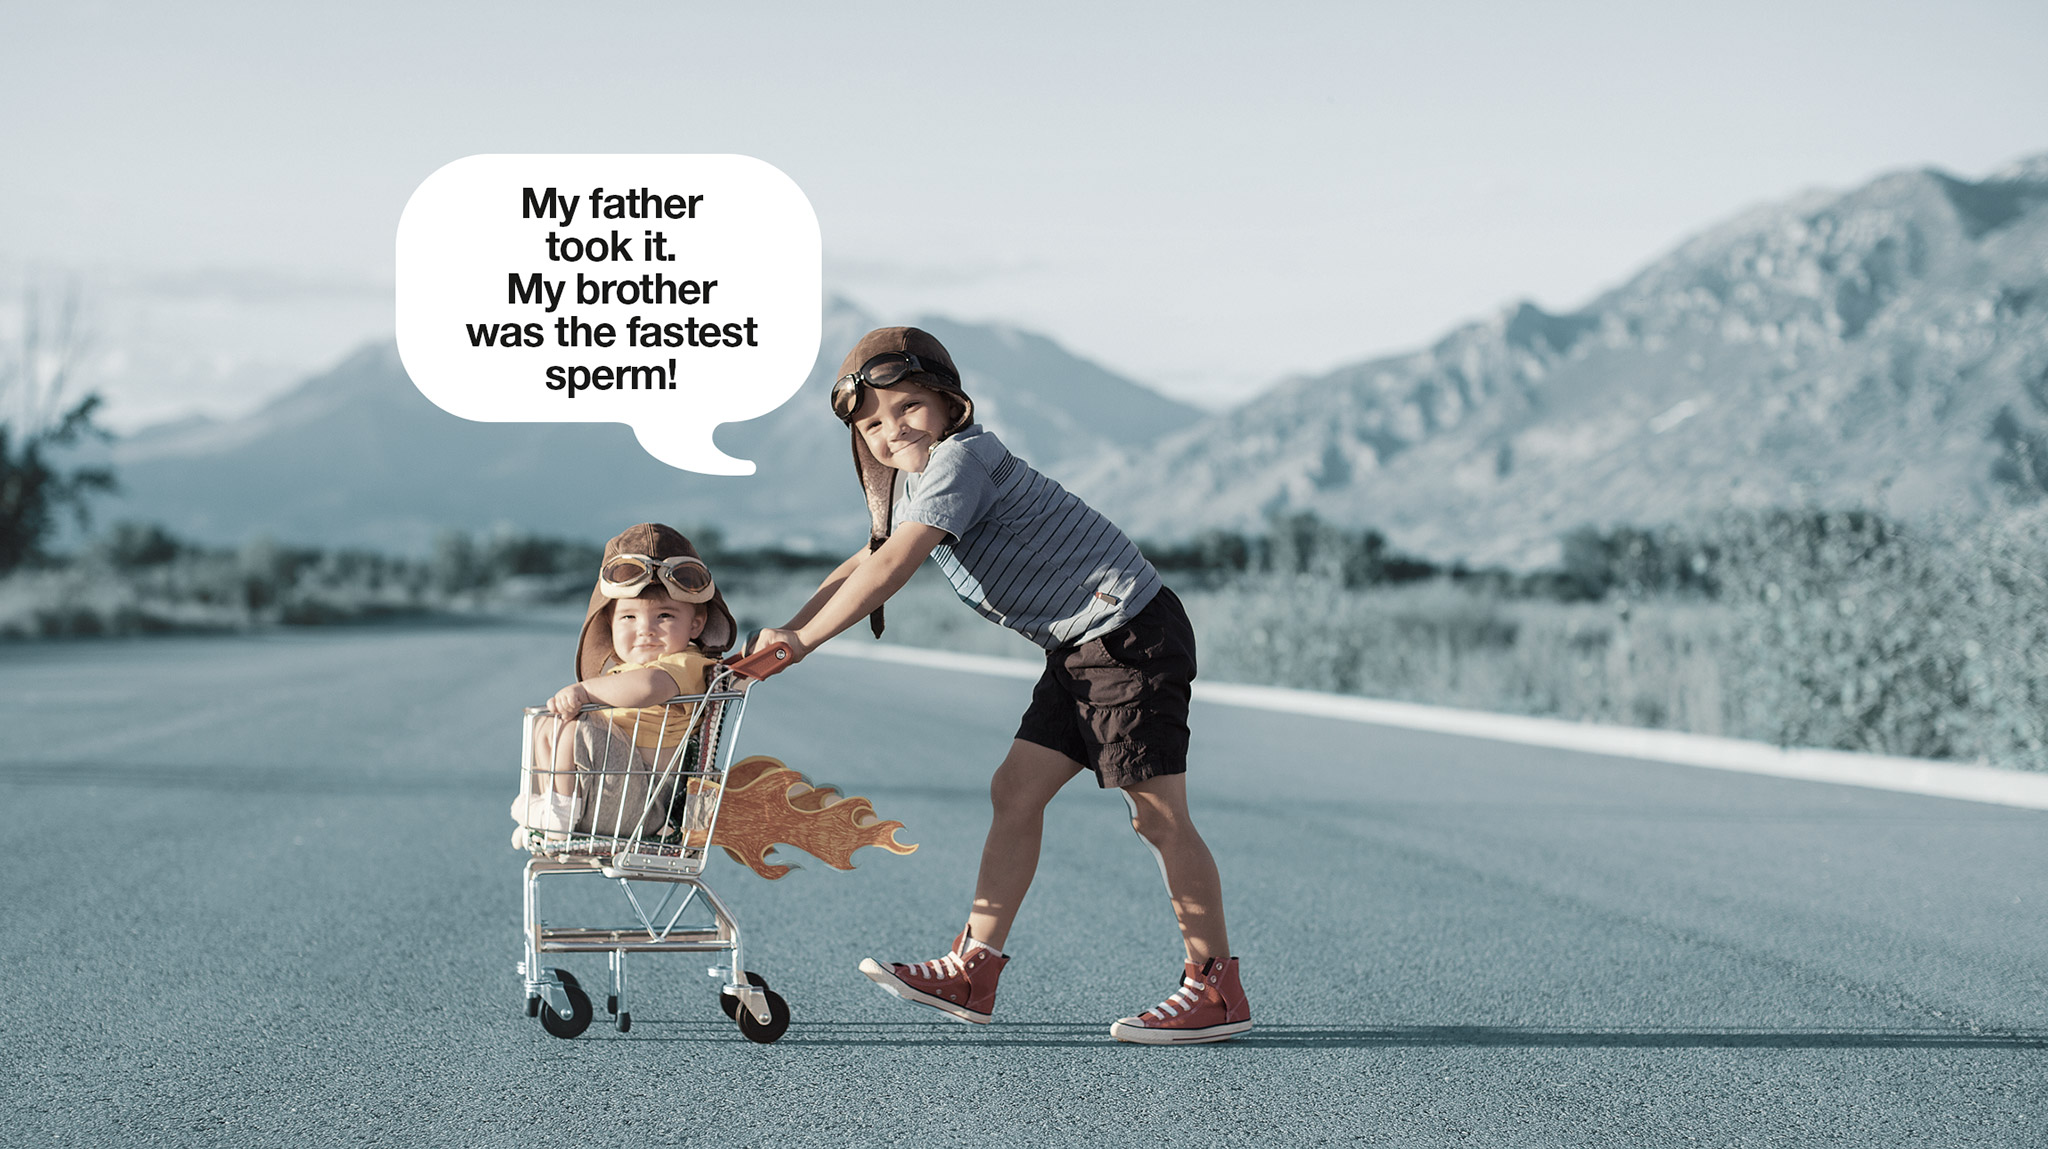 My father took PRfertil®. My brother was the fastest sperm.